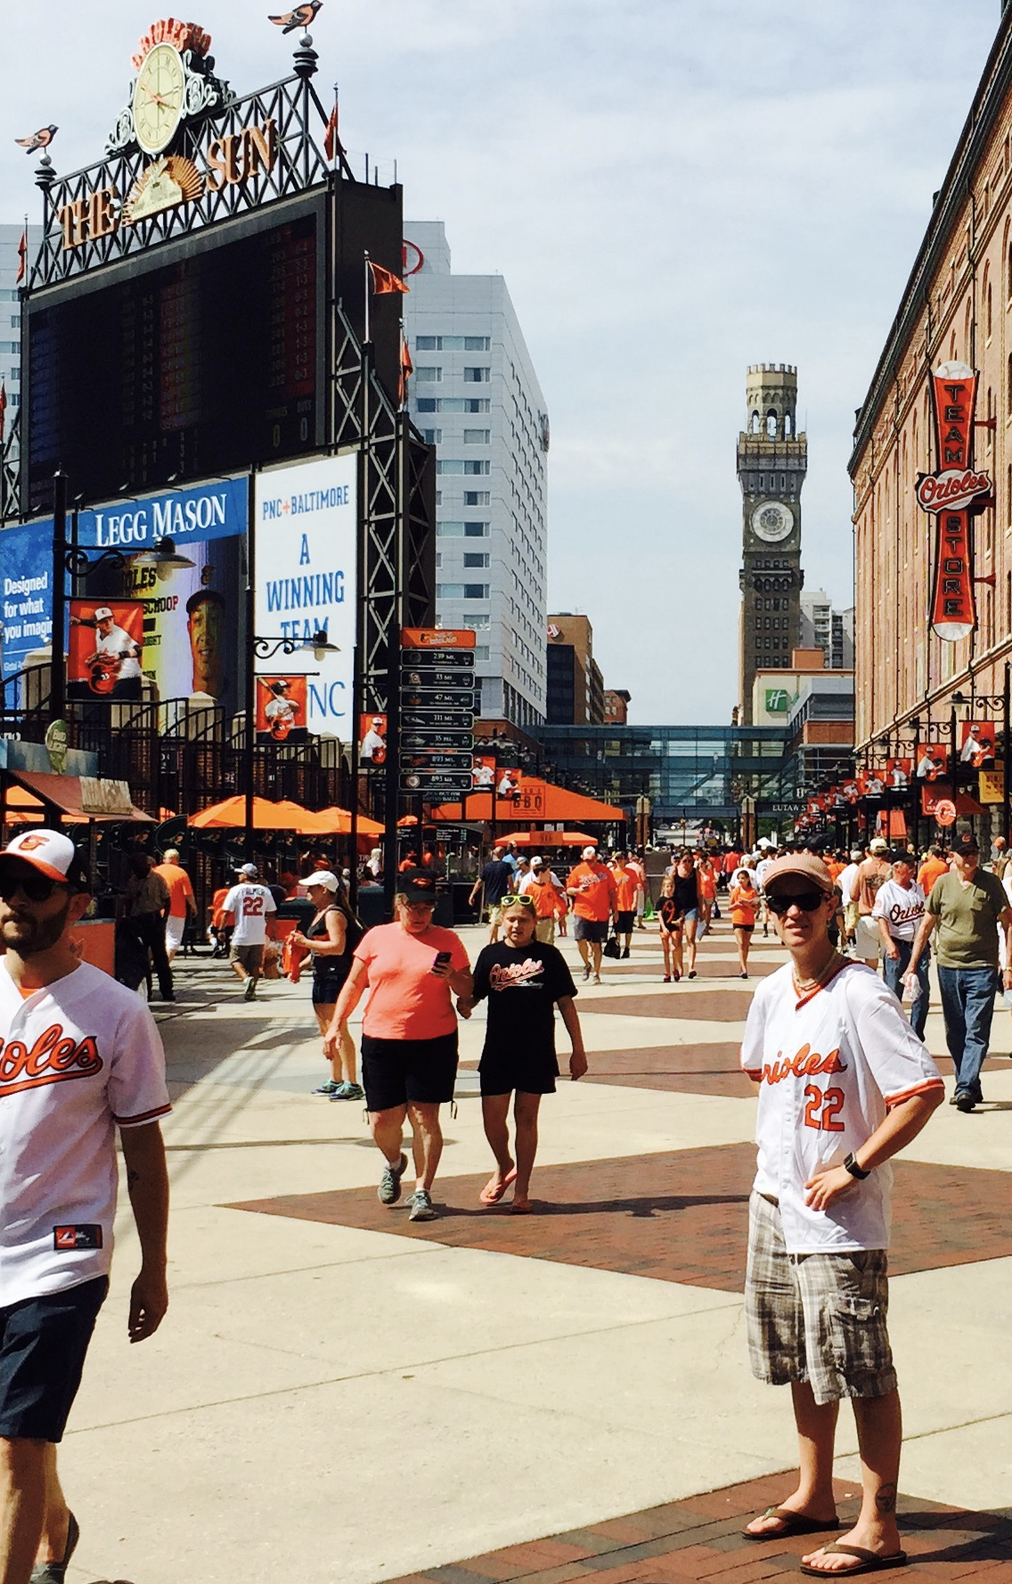 Me embracing my free Jim Palmer jersey on my visit to Camden Yards three years ago. I love baseball so much that I'm making my way around all of the MLB ballparks, one year at a time.